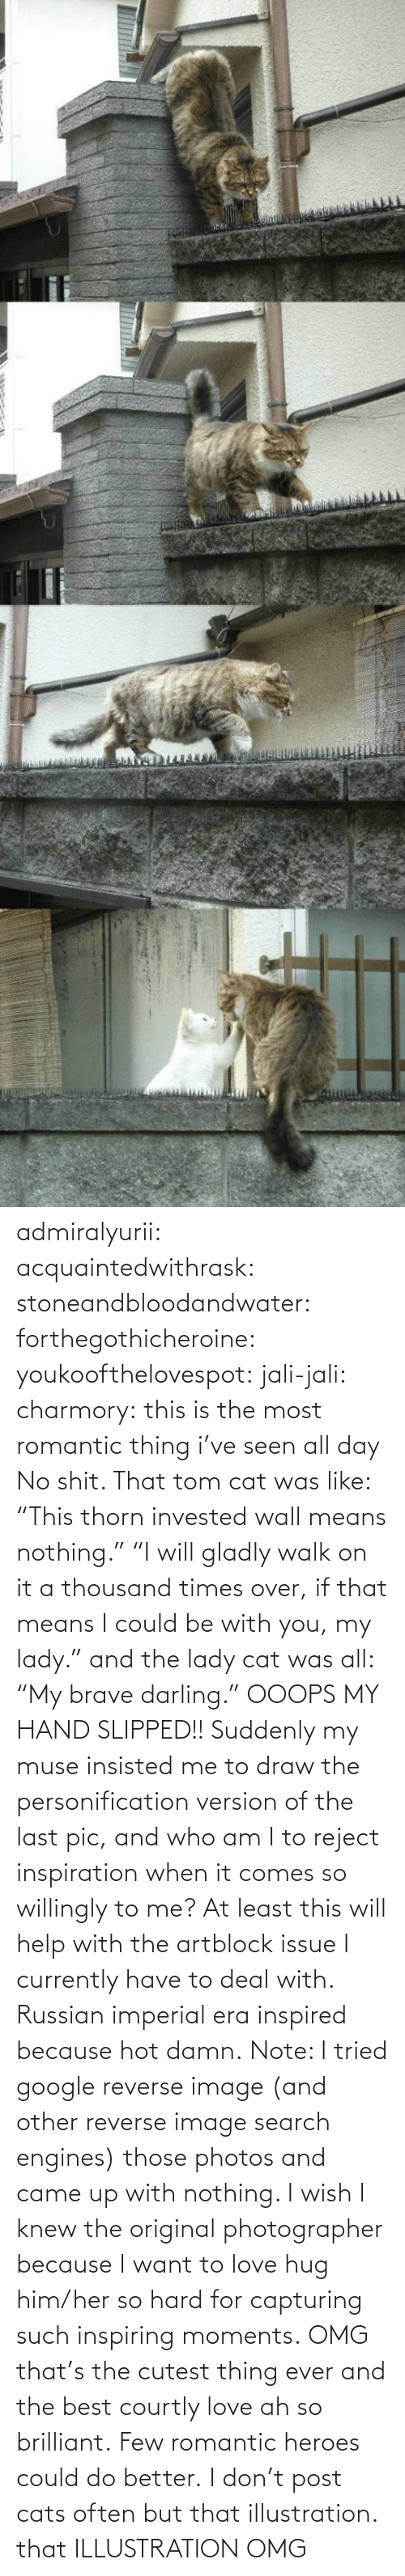 "Was: admiralyurii: acquaintedwithrask:  stoneandbloodandwater:  forthegothicheroine:  youkoofthelovespot:  jali-jali:  charmory:  this is the most romantic thing i've seen all day  No shit. That tom cat was like: ""This thorn invested wall means nothing."" ""I will gladly walk on it a thousand times over, if that means I could be with you, my lady."" and the lady cat was all: ""My brave darling."" OOOPS MY HAND SLIPPED!!  Suddenly my muse insisted me to draw the personification version of the last pic, and who am I to reject inspiration when it comes so willingly to me? At least this will help with the artblock issue I currently have to deal with. Russian imperial era inspired because hot damn. Note: I tried google reverse image (and other reverse image search engines) those photos and came up with nothing. I wish I knew the original photographer because I want to love hug him/her so hard for capturing such inspiring moments.  OMG that's the cutest thing ever and the best courtly love ah so brilliant.  Few romantic heroes could do better.  I don't post cats often but that illustration.  that ILLUSTRATION    OMG"